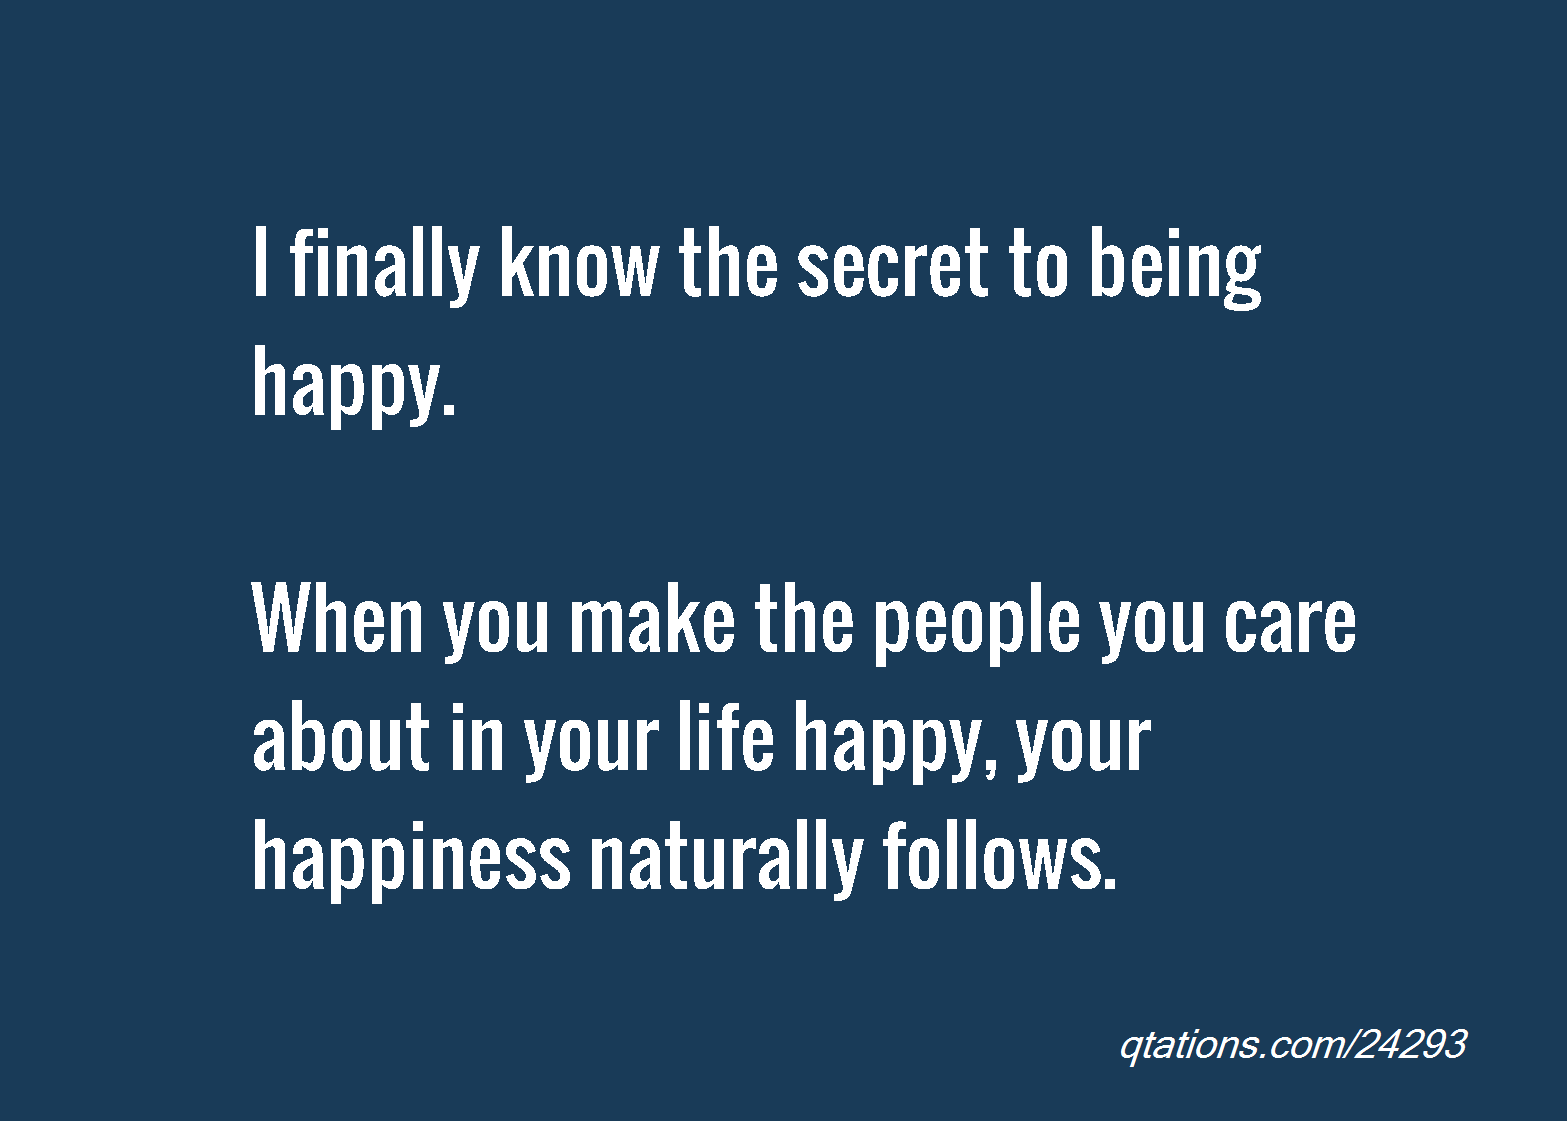 Being Happy Quotes And Sayings Quotesgram: Quotes About Finally Being Happy. QuotesGram